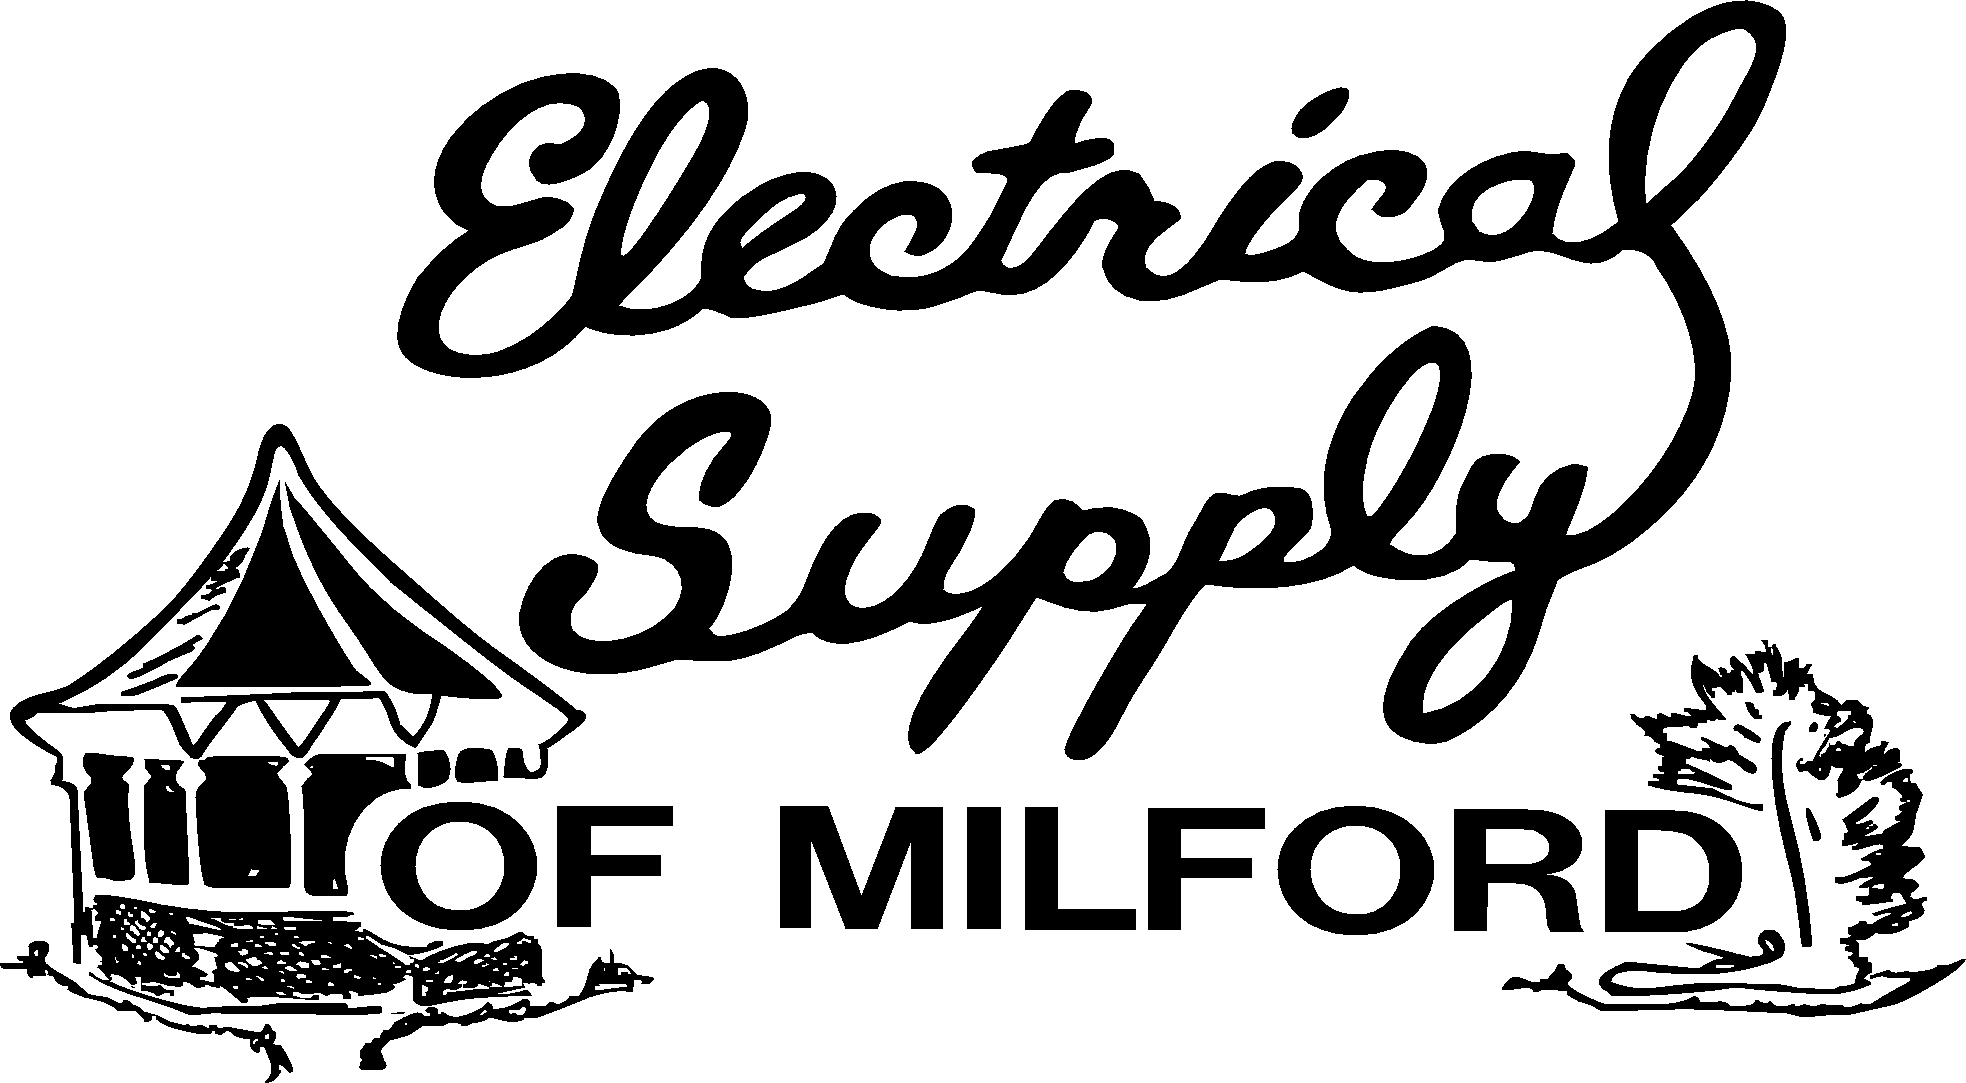 ELECTRICAL SUPPLY OF MILFORD